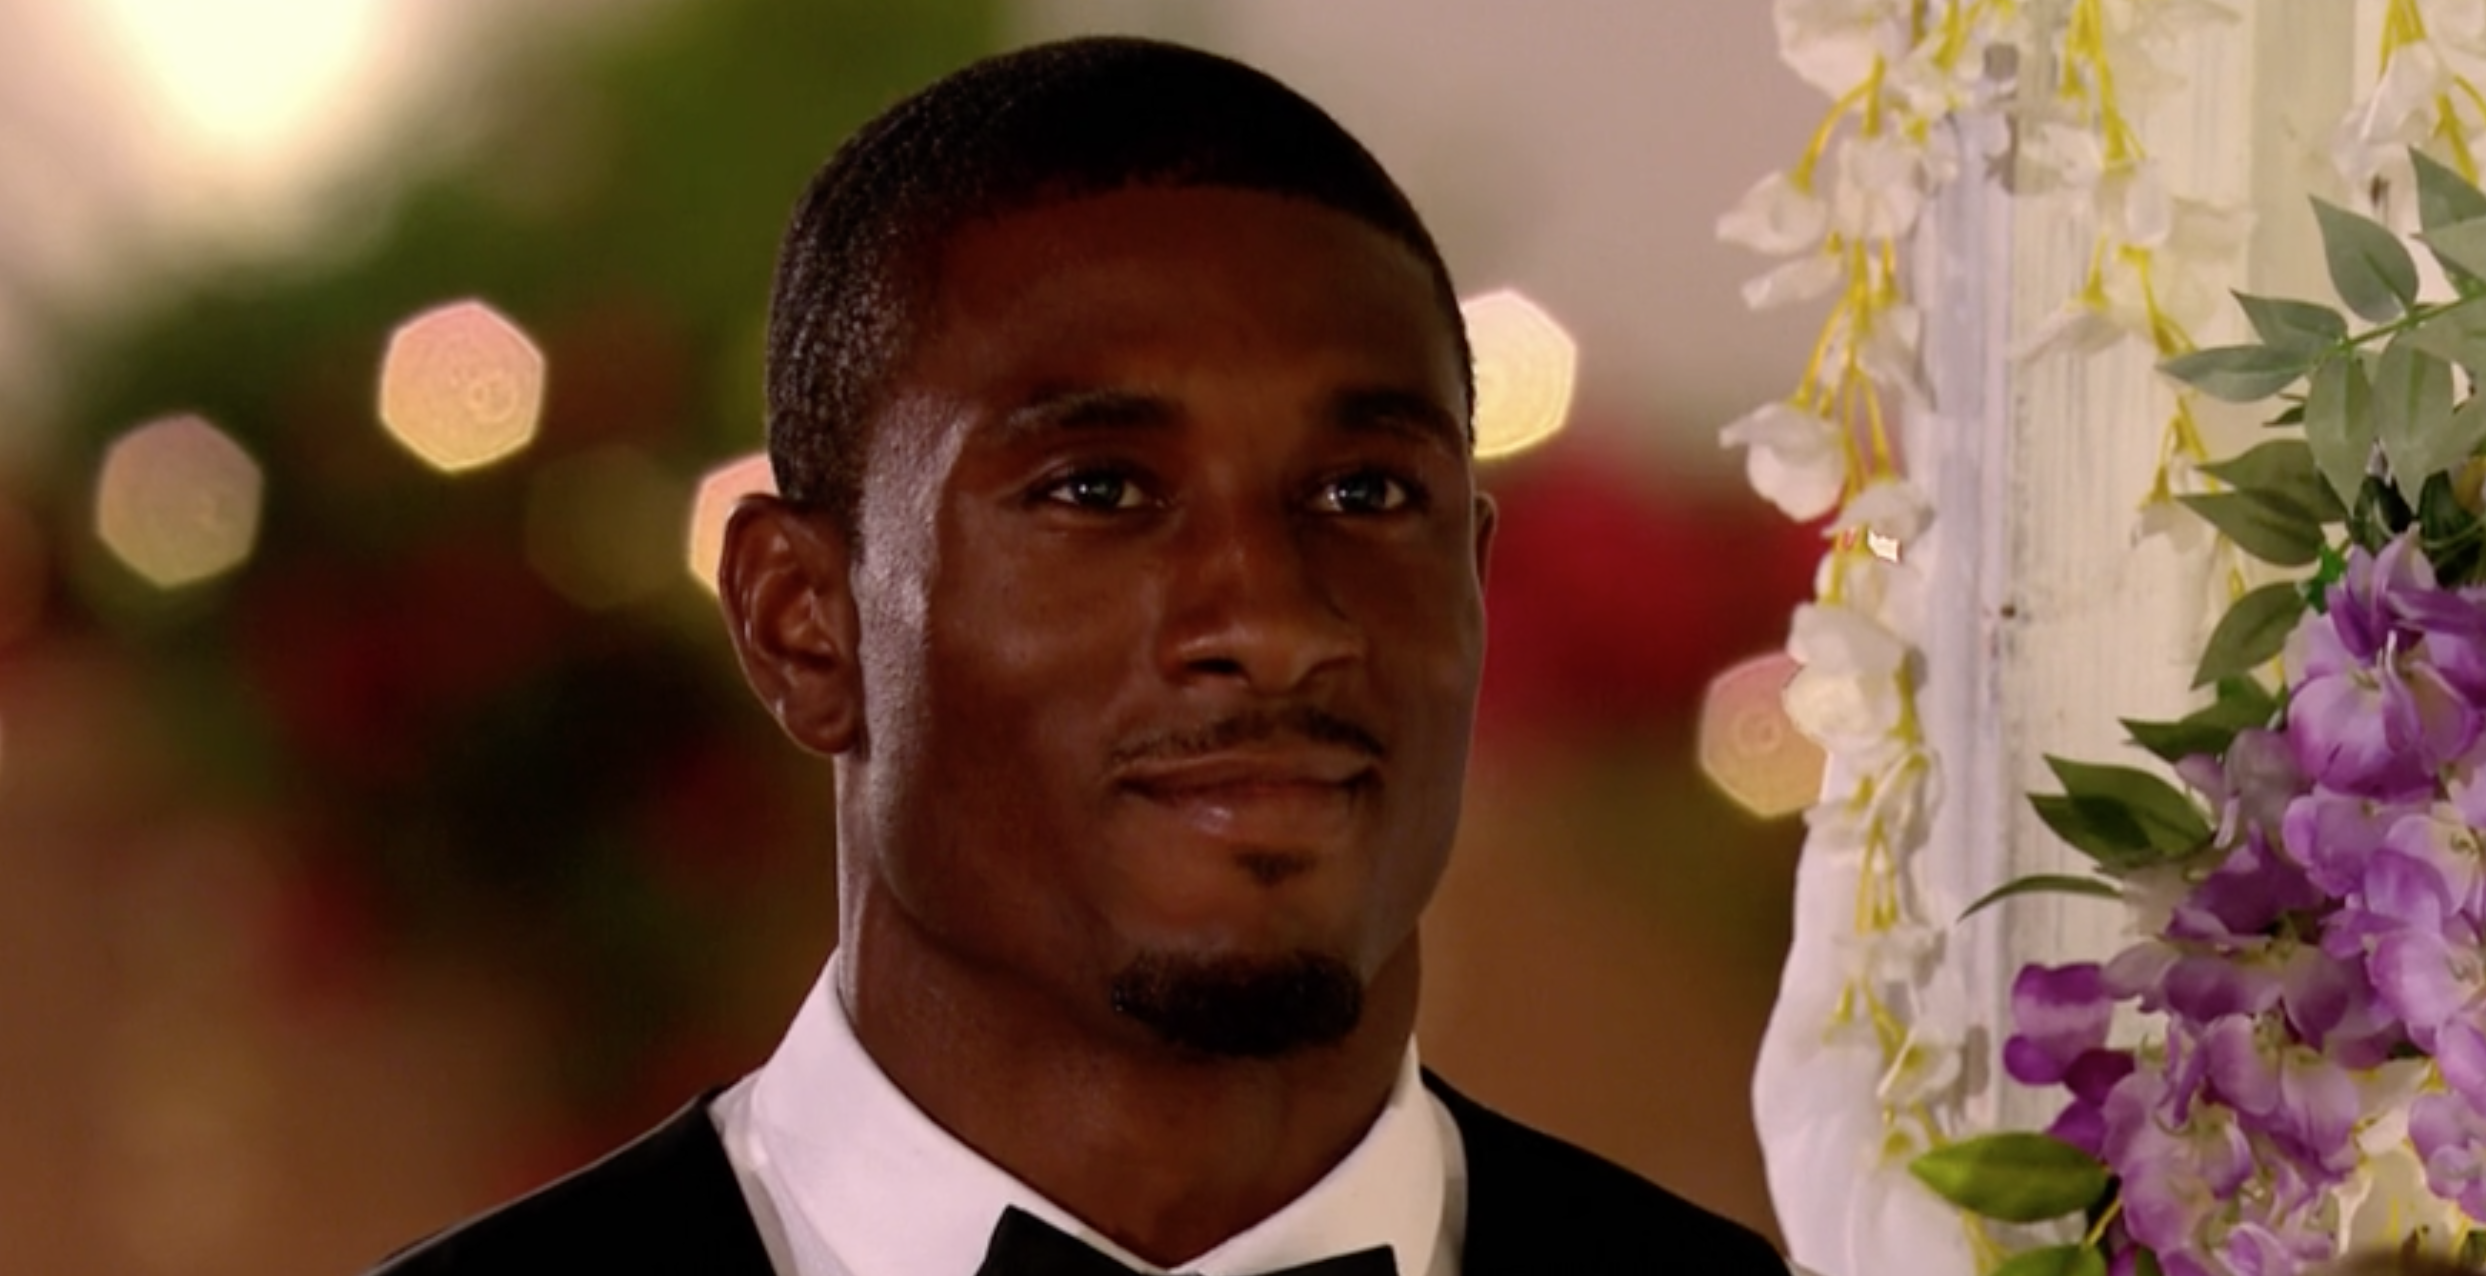 Love Island viewers 'beg' TV bosses to give third placed Ovie his own show